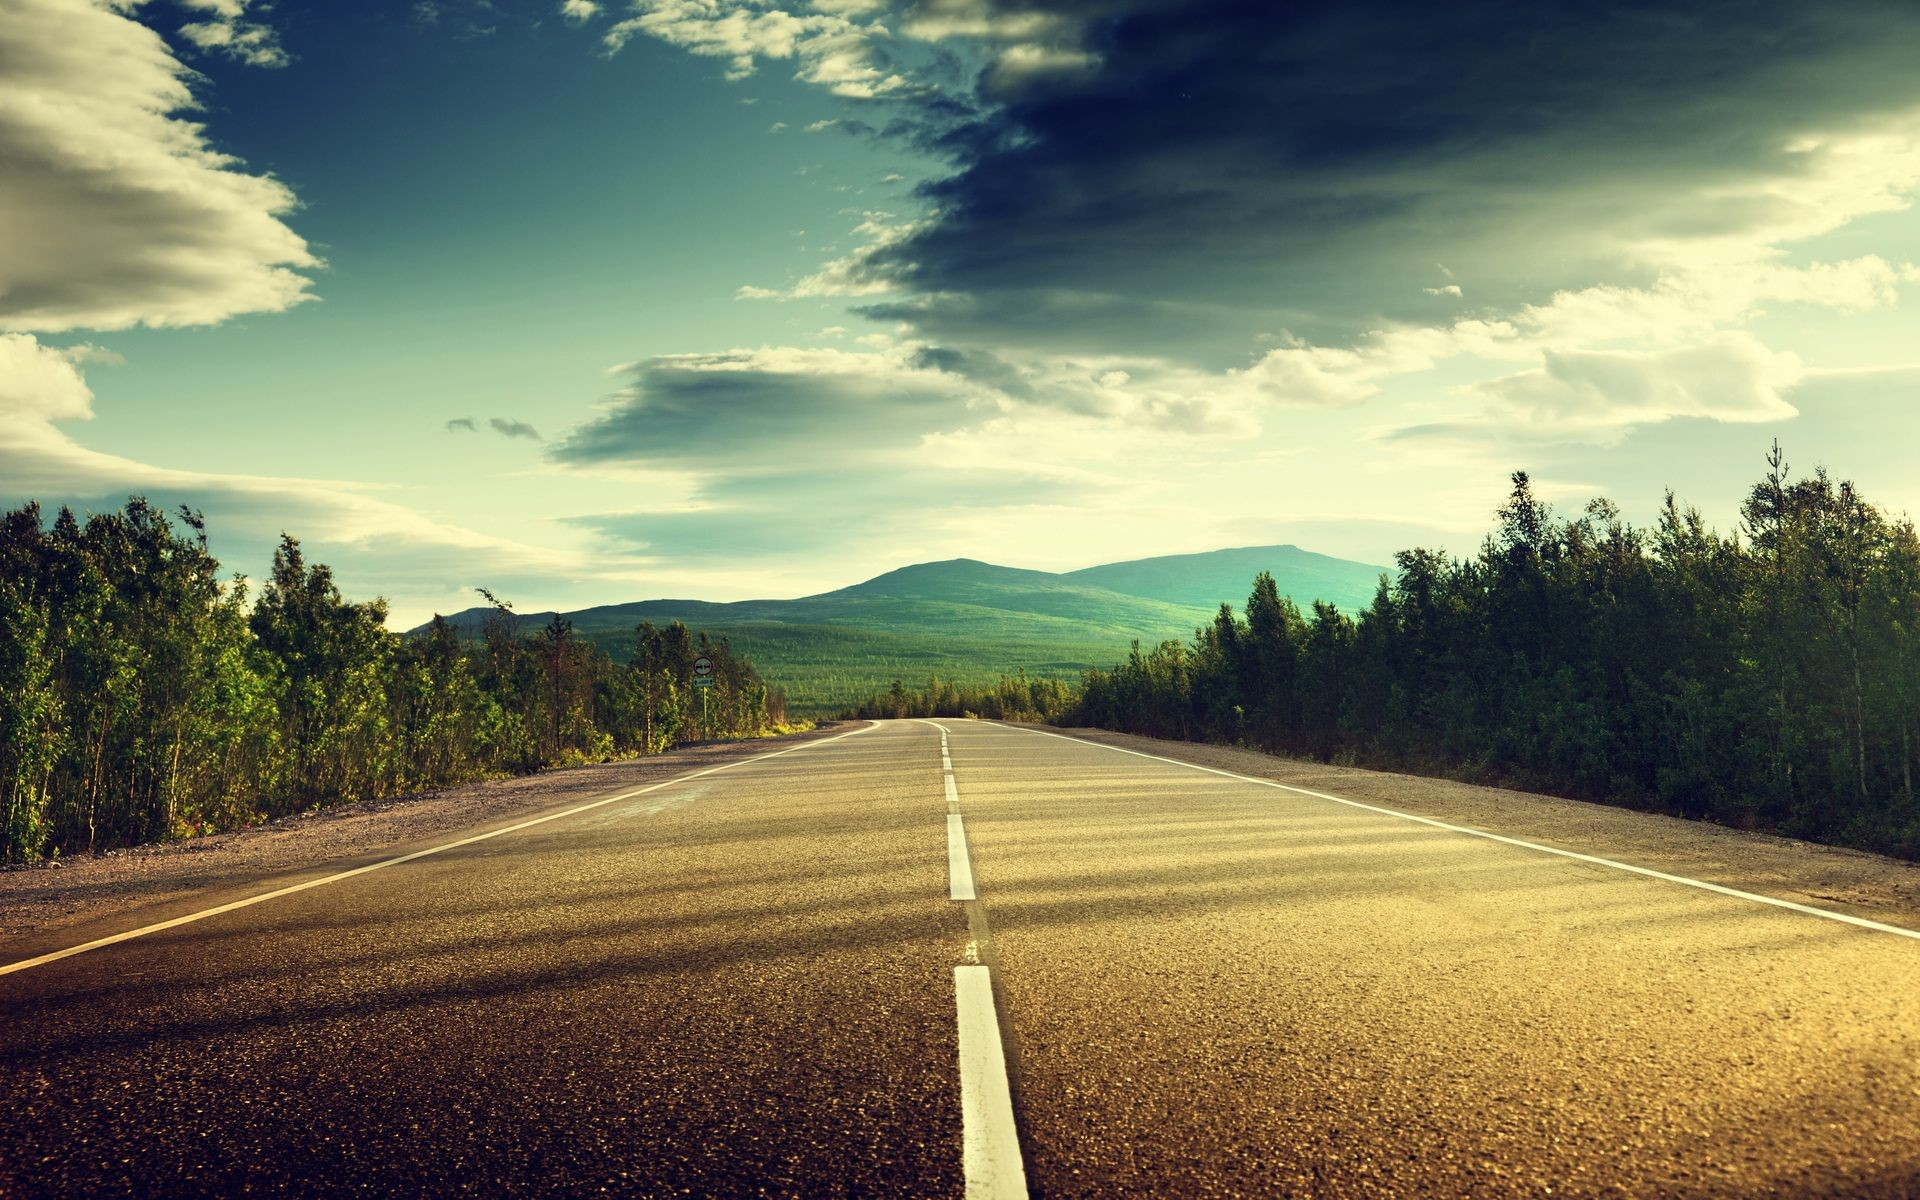 High Resolution Wallpaper 1920x1200: Road Wallpaper ·① Download Free Beautiful High Resolution